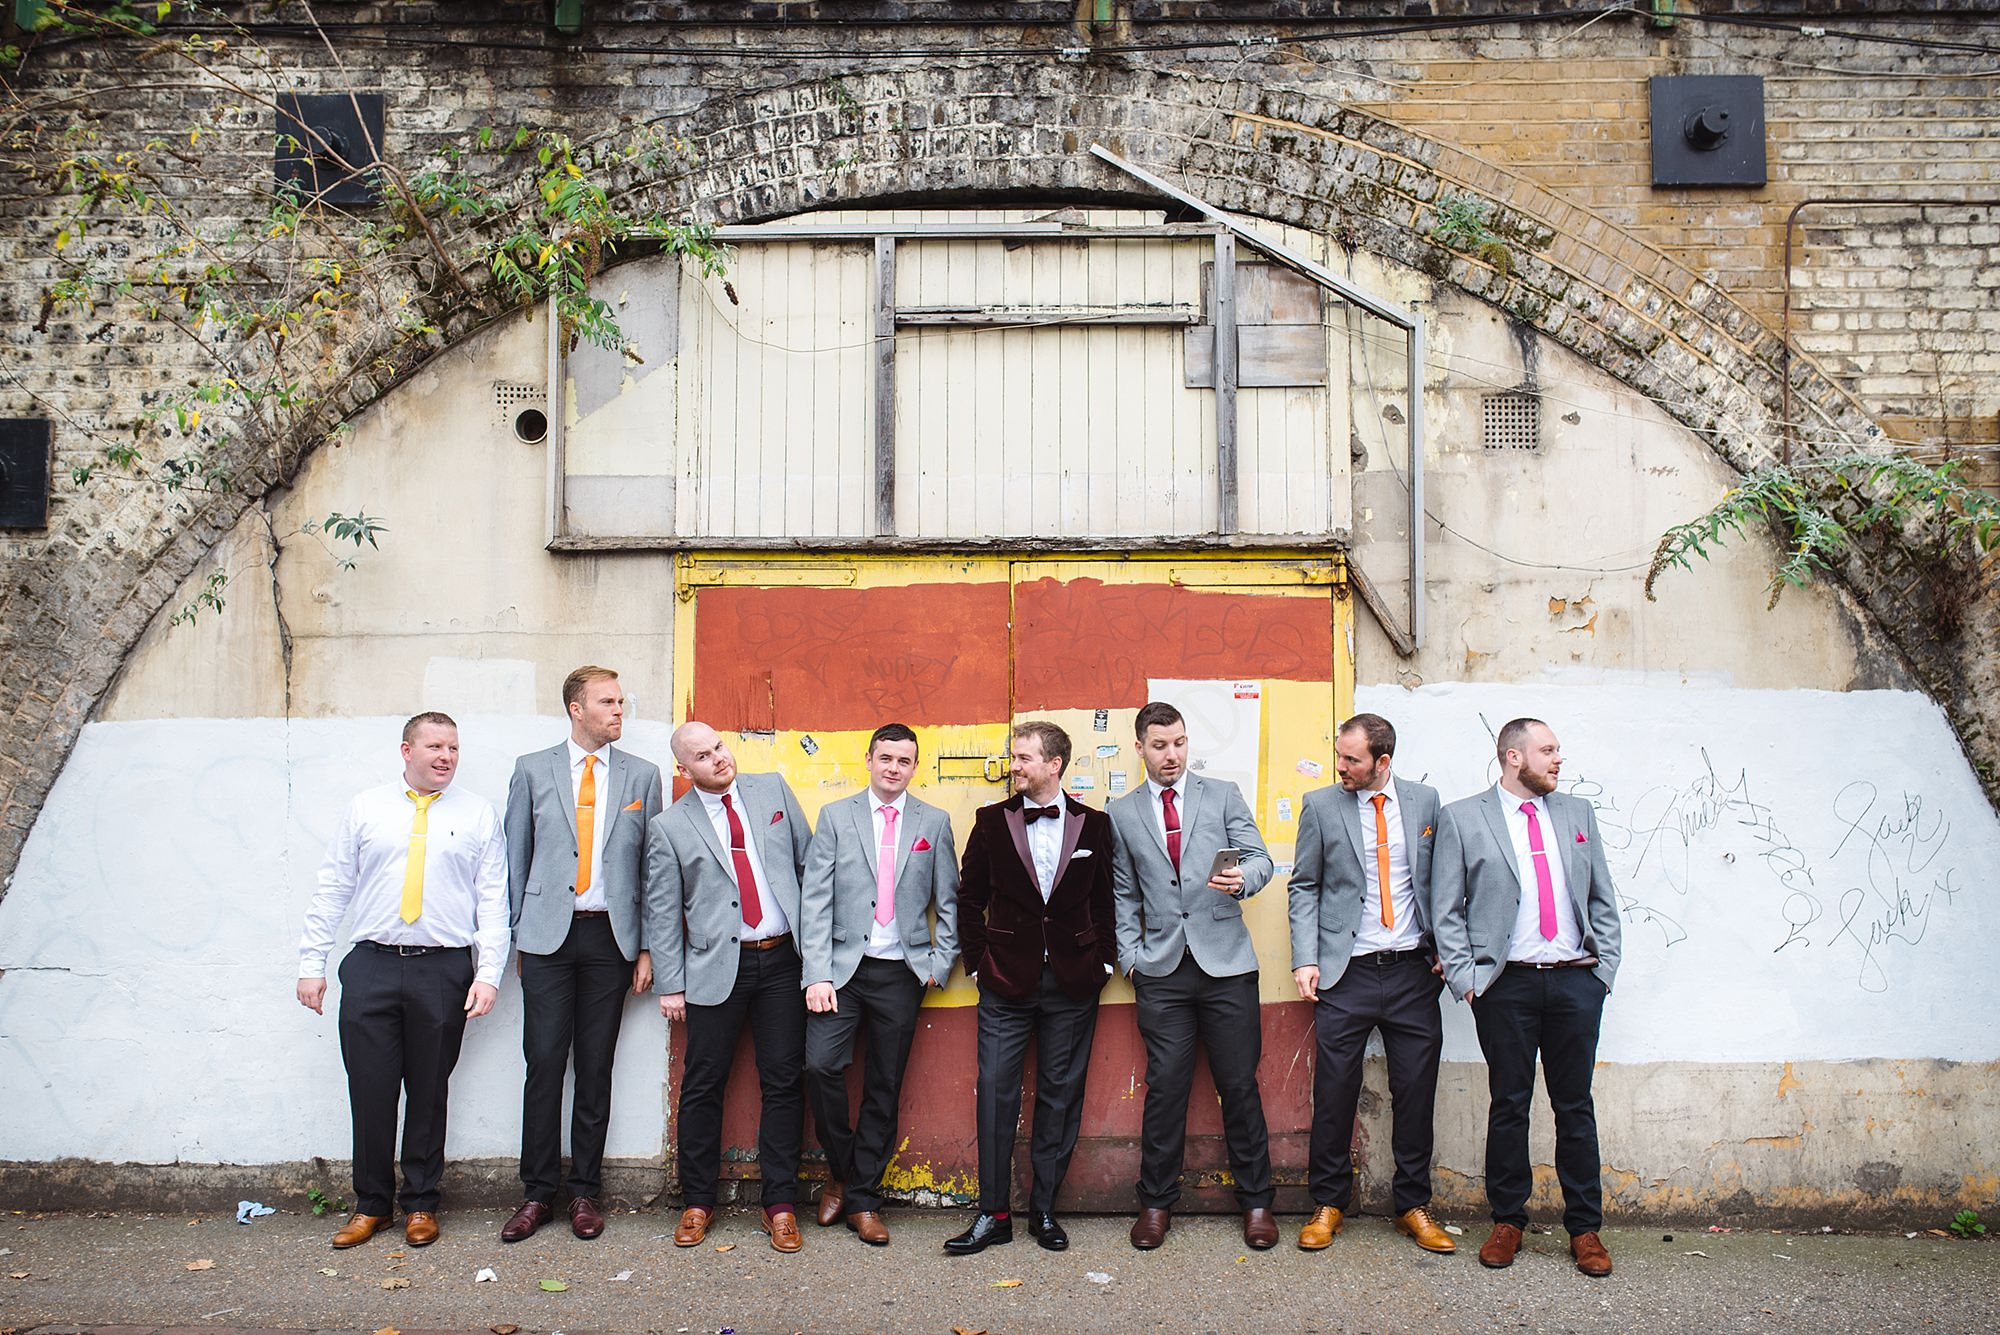 Fun London Wedding groom and groomsmen together in front of a shop in brixton